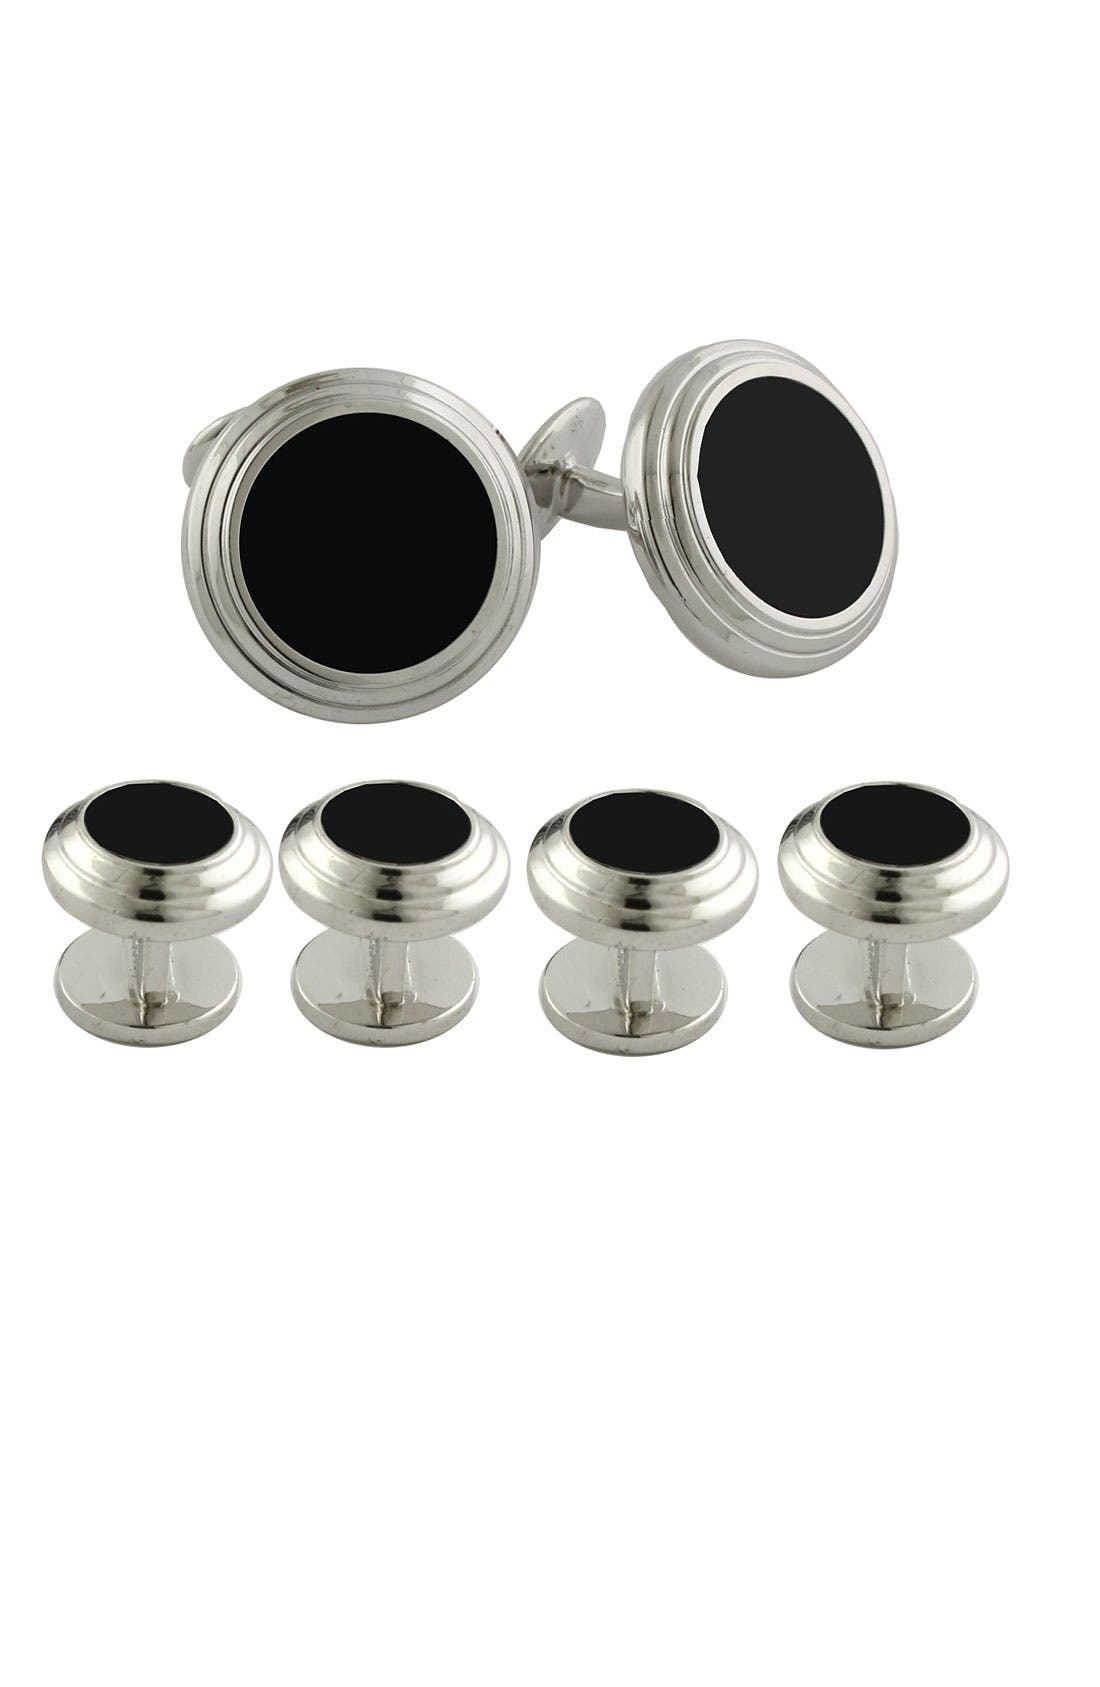 Alternate Image 1 Selected - David Donahue Sterling Silver Cuff Link & Stud Set